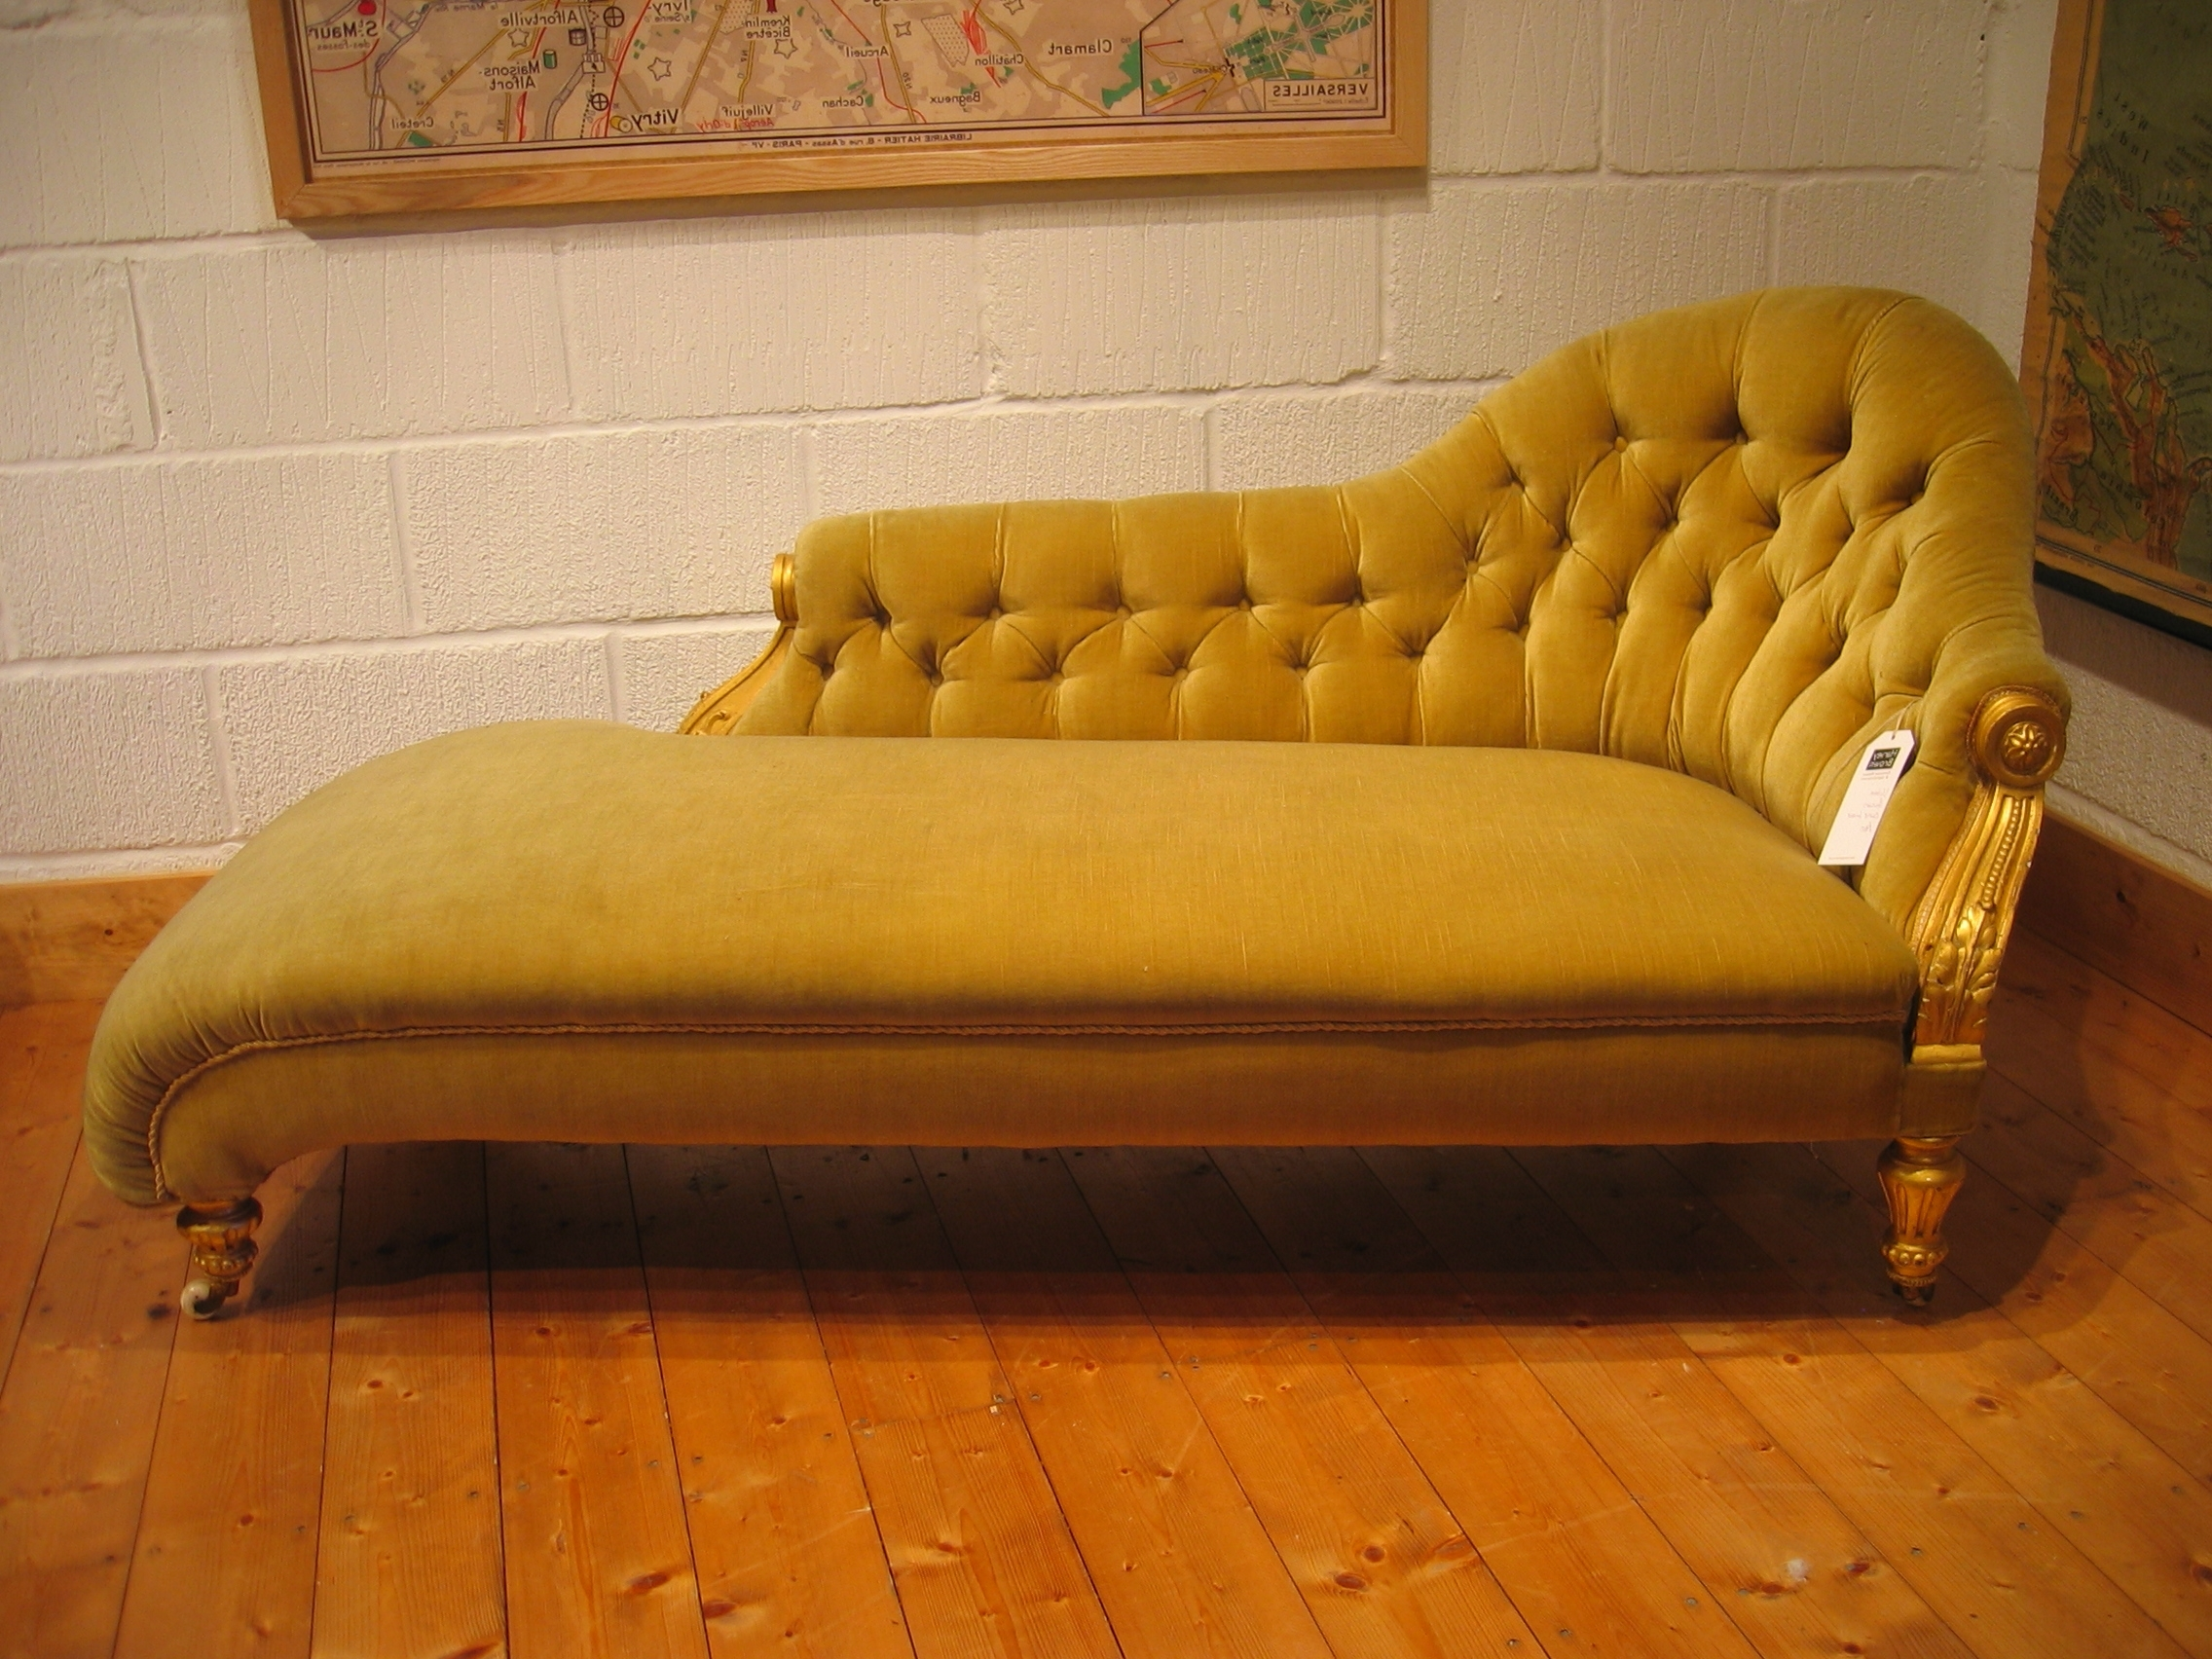 Yellow Chaise Lounge Chairs in Well-liked Yellow Color Antique Victorian Chaise Lounge Sofa Bed With Wooden